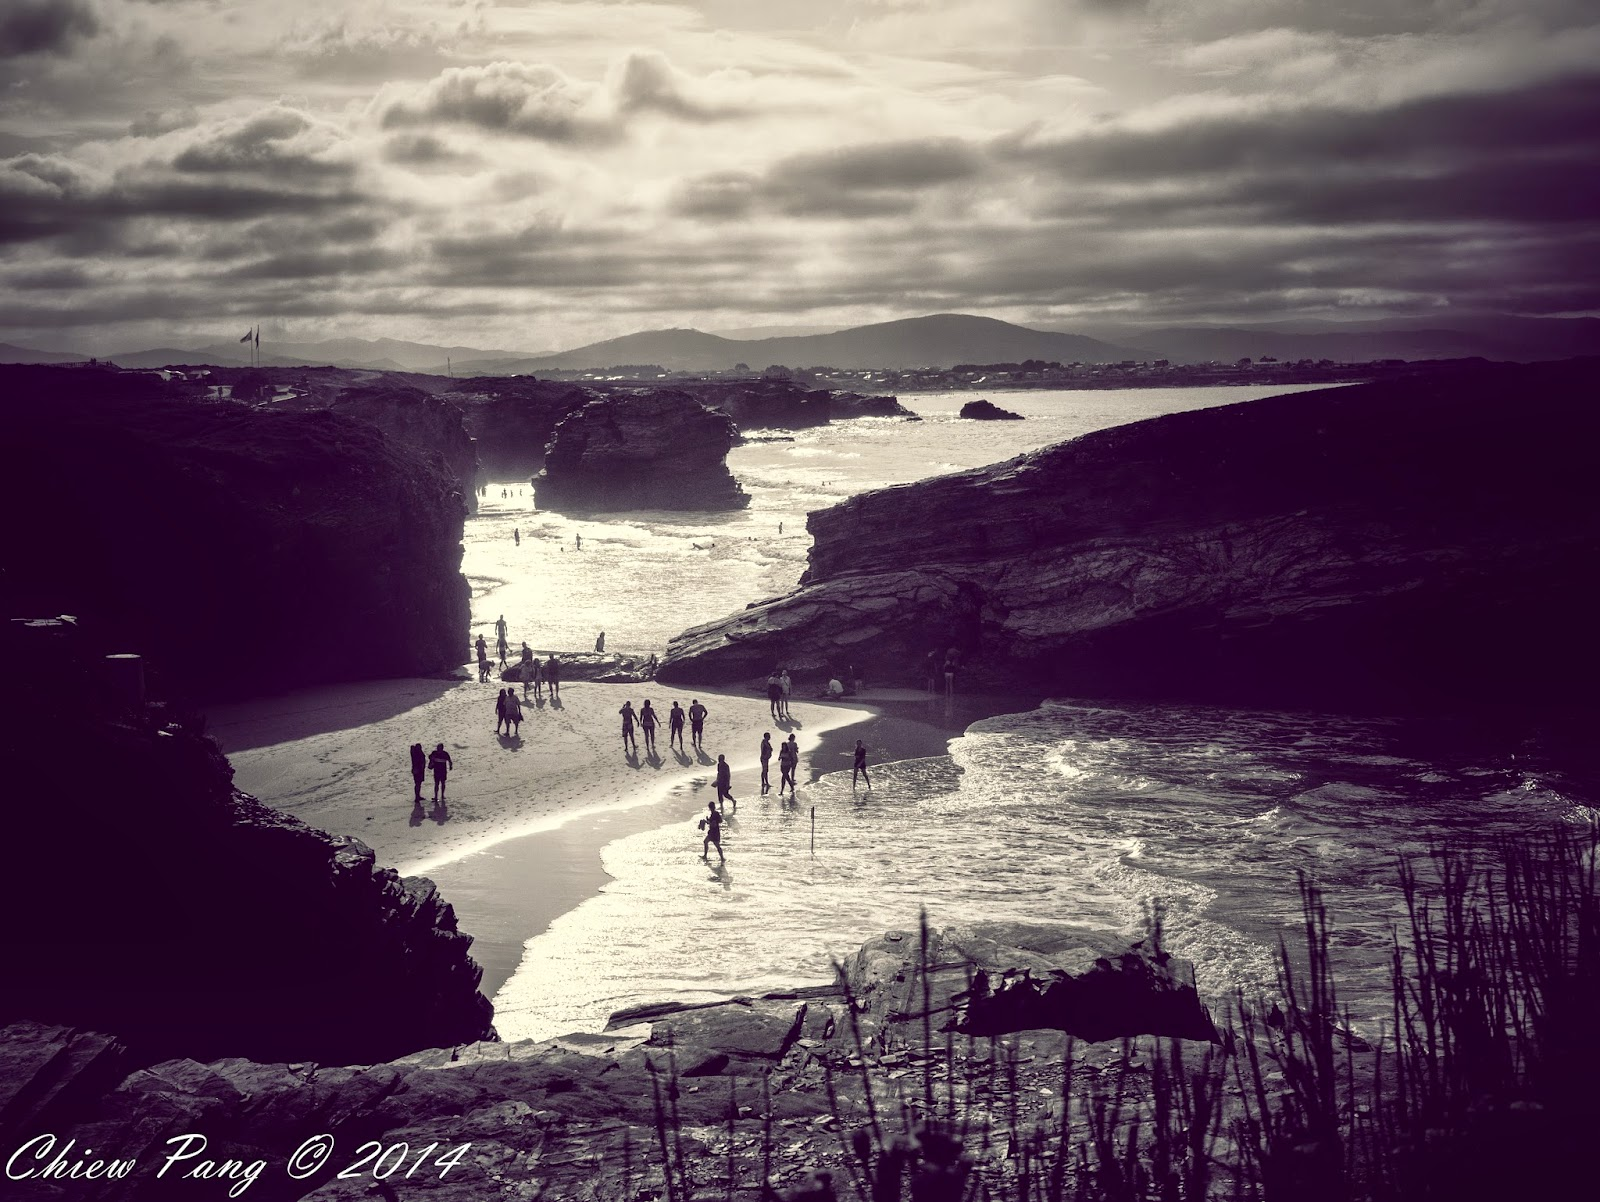 Playa de Las Catedrales, As Catedrais, Beach of the Cathedrals, Galicia